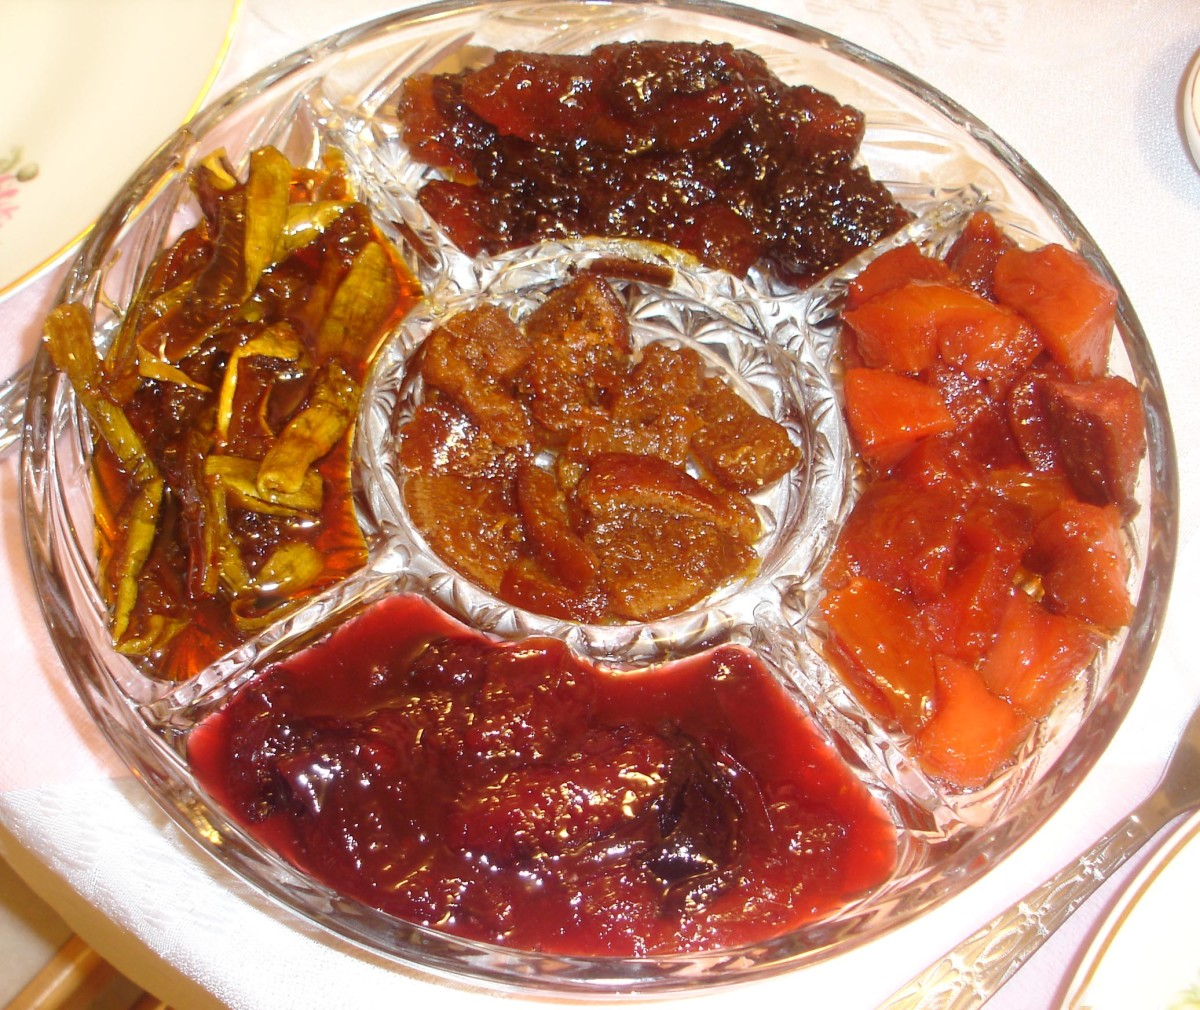 Pectin is used in jams as a gelling agent